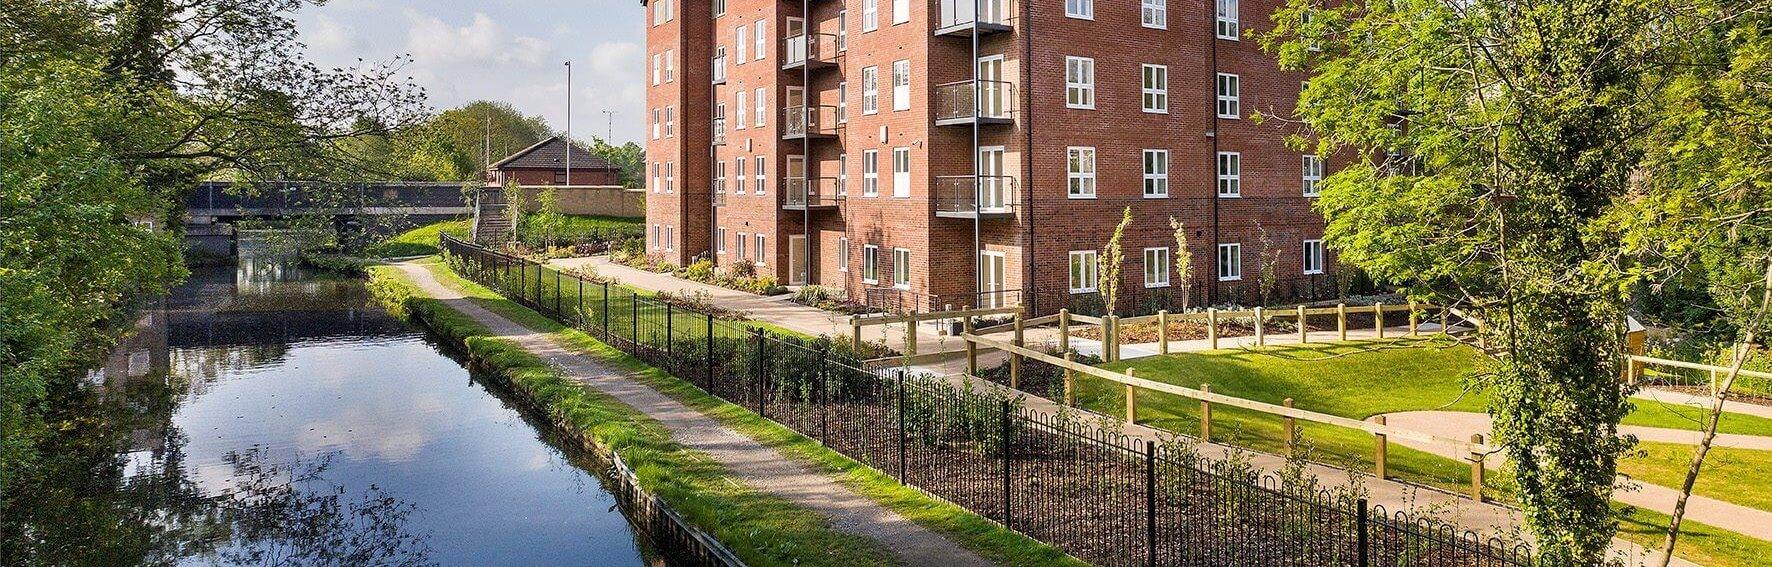 Romiley Stockport retirement apartments flats